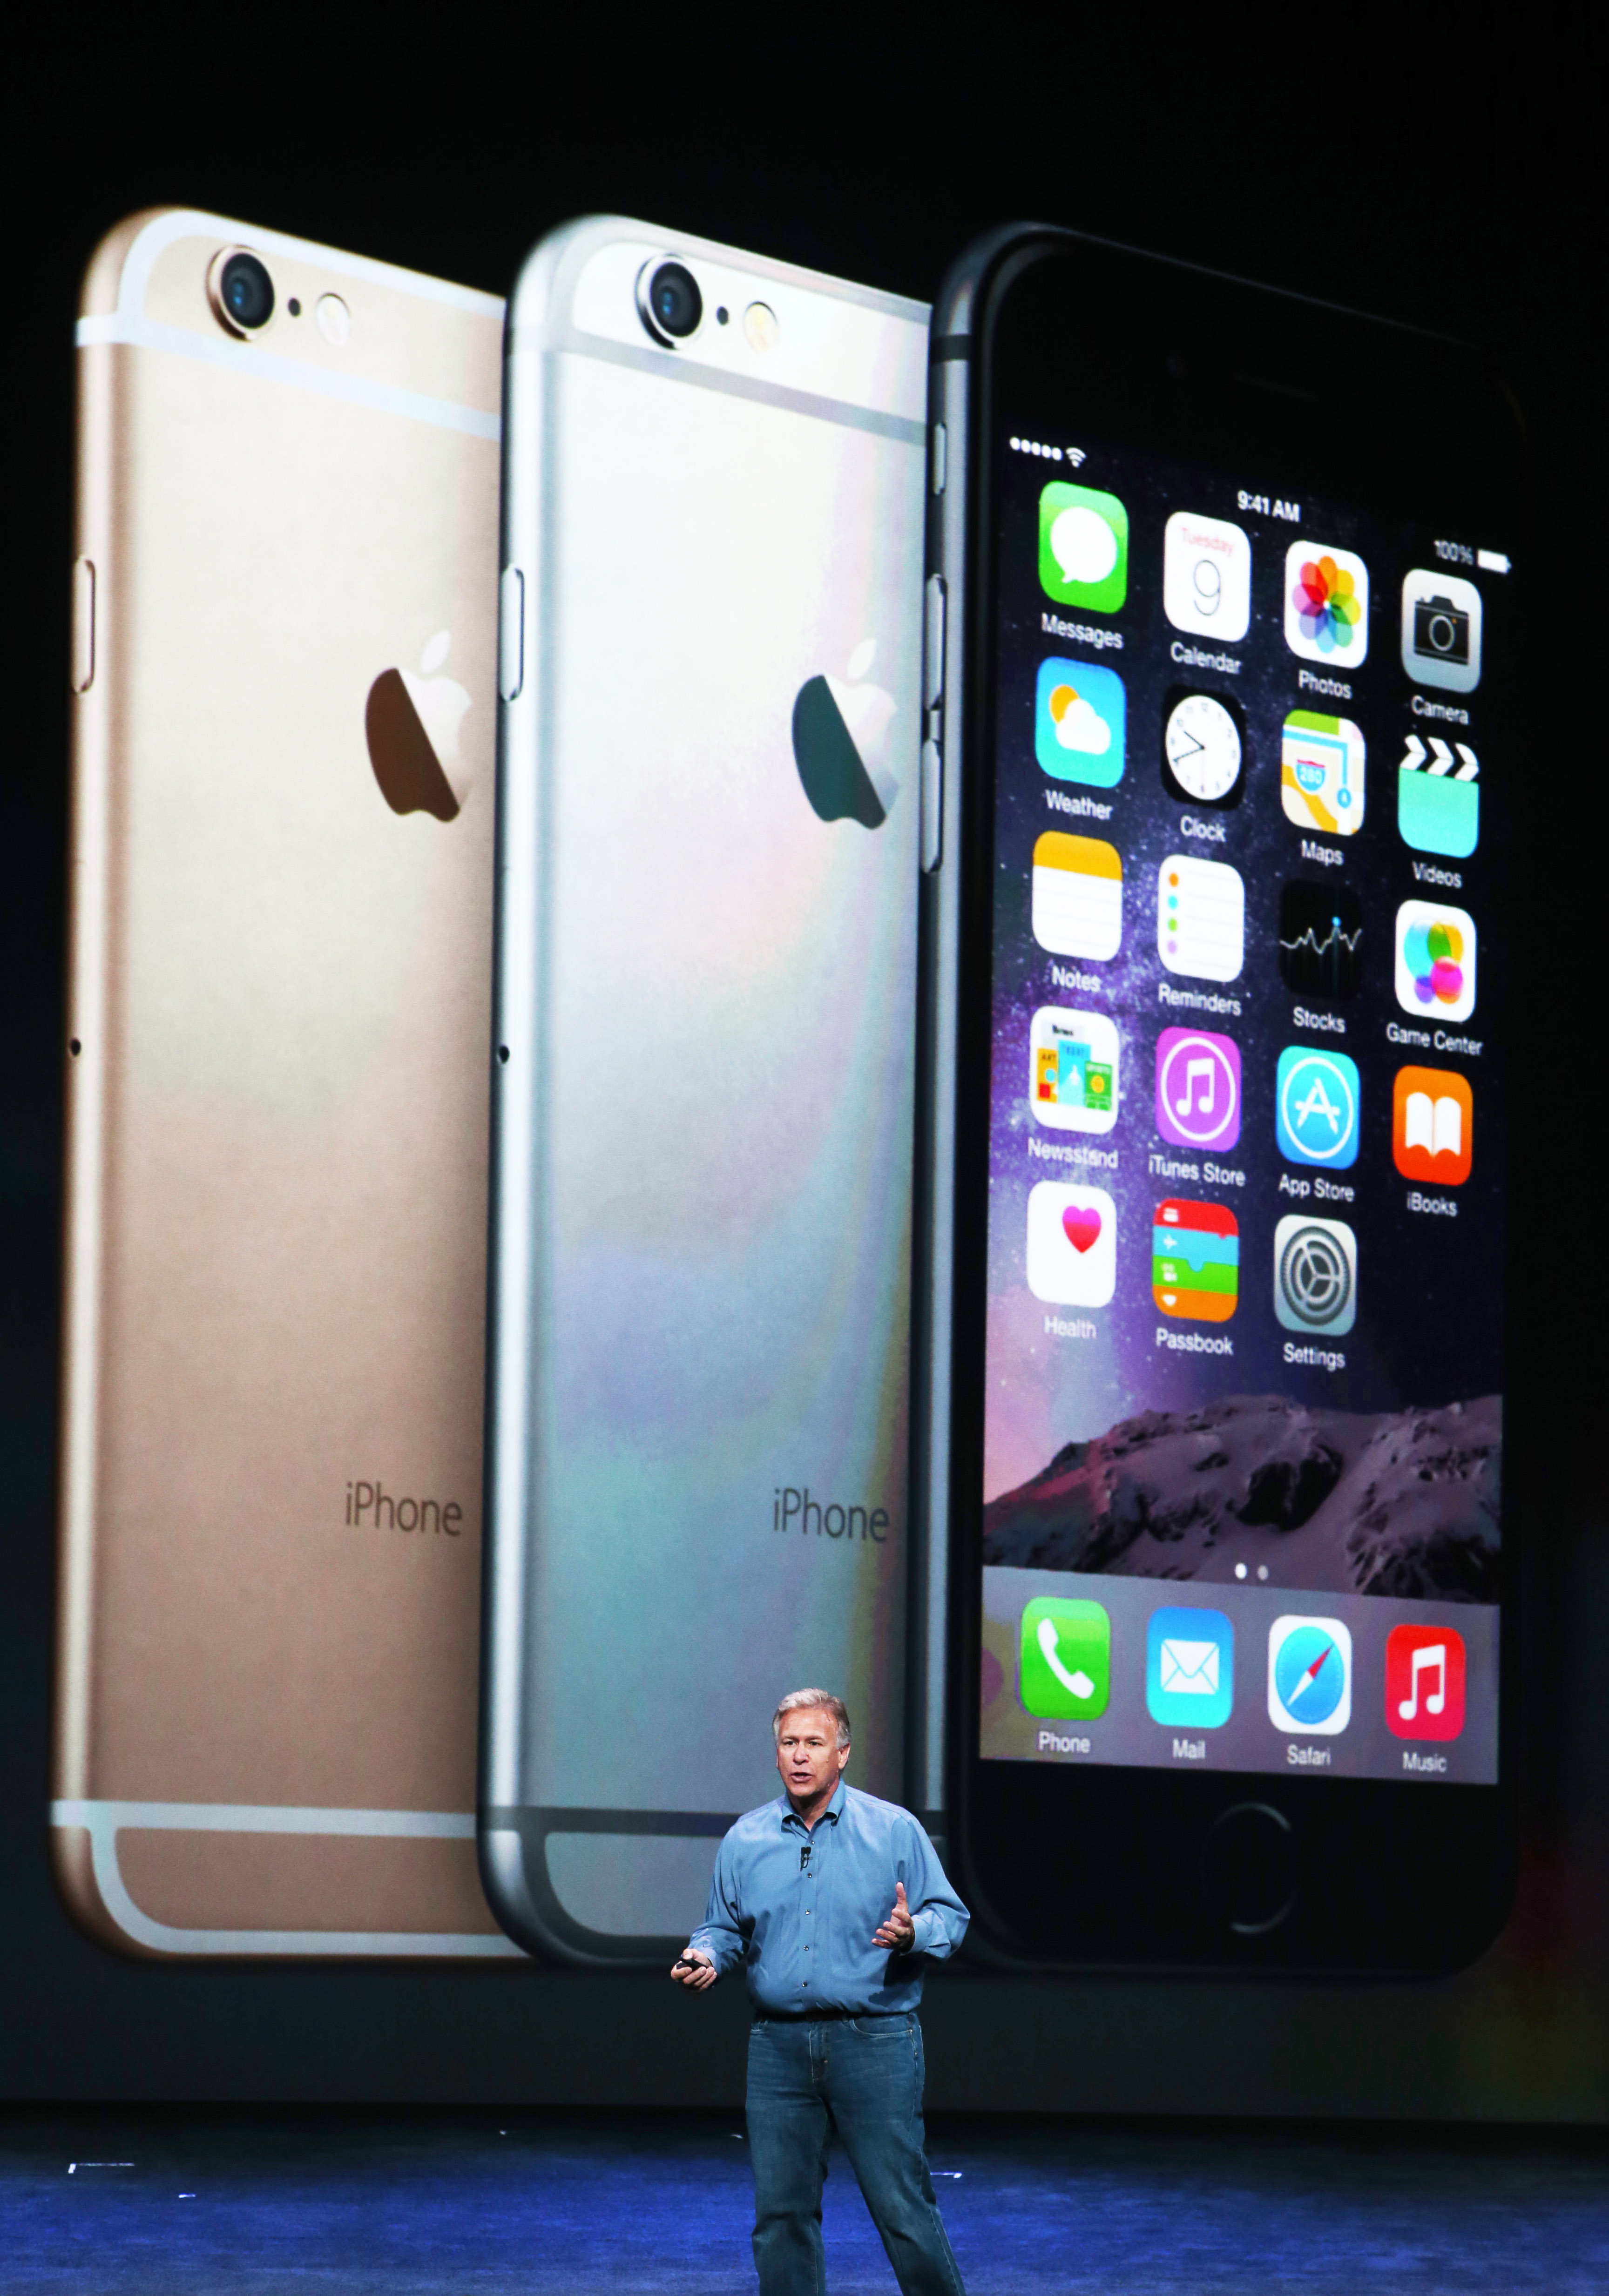 Iphone 6 events 2